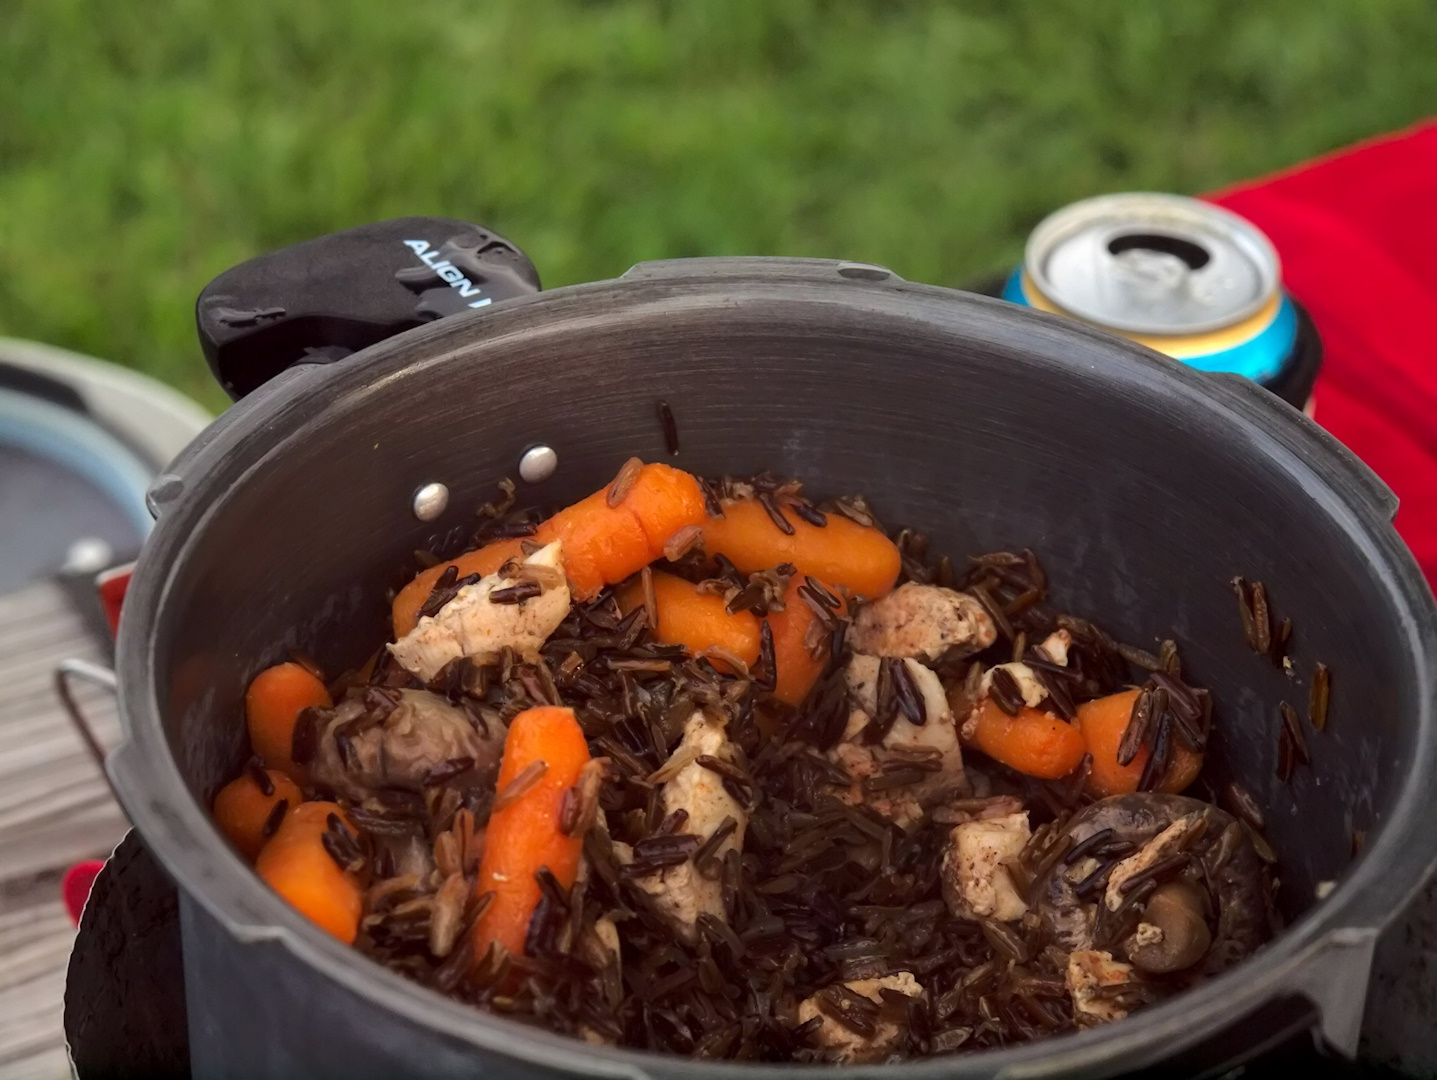 Pot itself is a good anodized aluminum pot 2.5 liters, total weight under 3  pounds. Cooked rice for 15 min, added chicken for 5 min, veggies for 5 min.